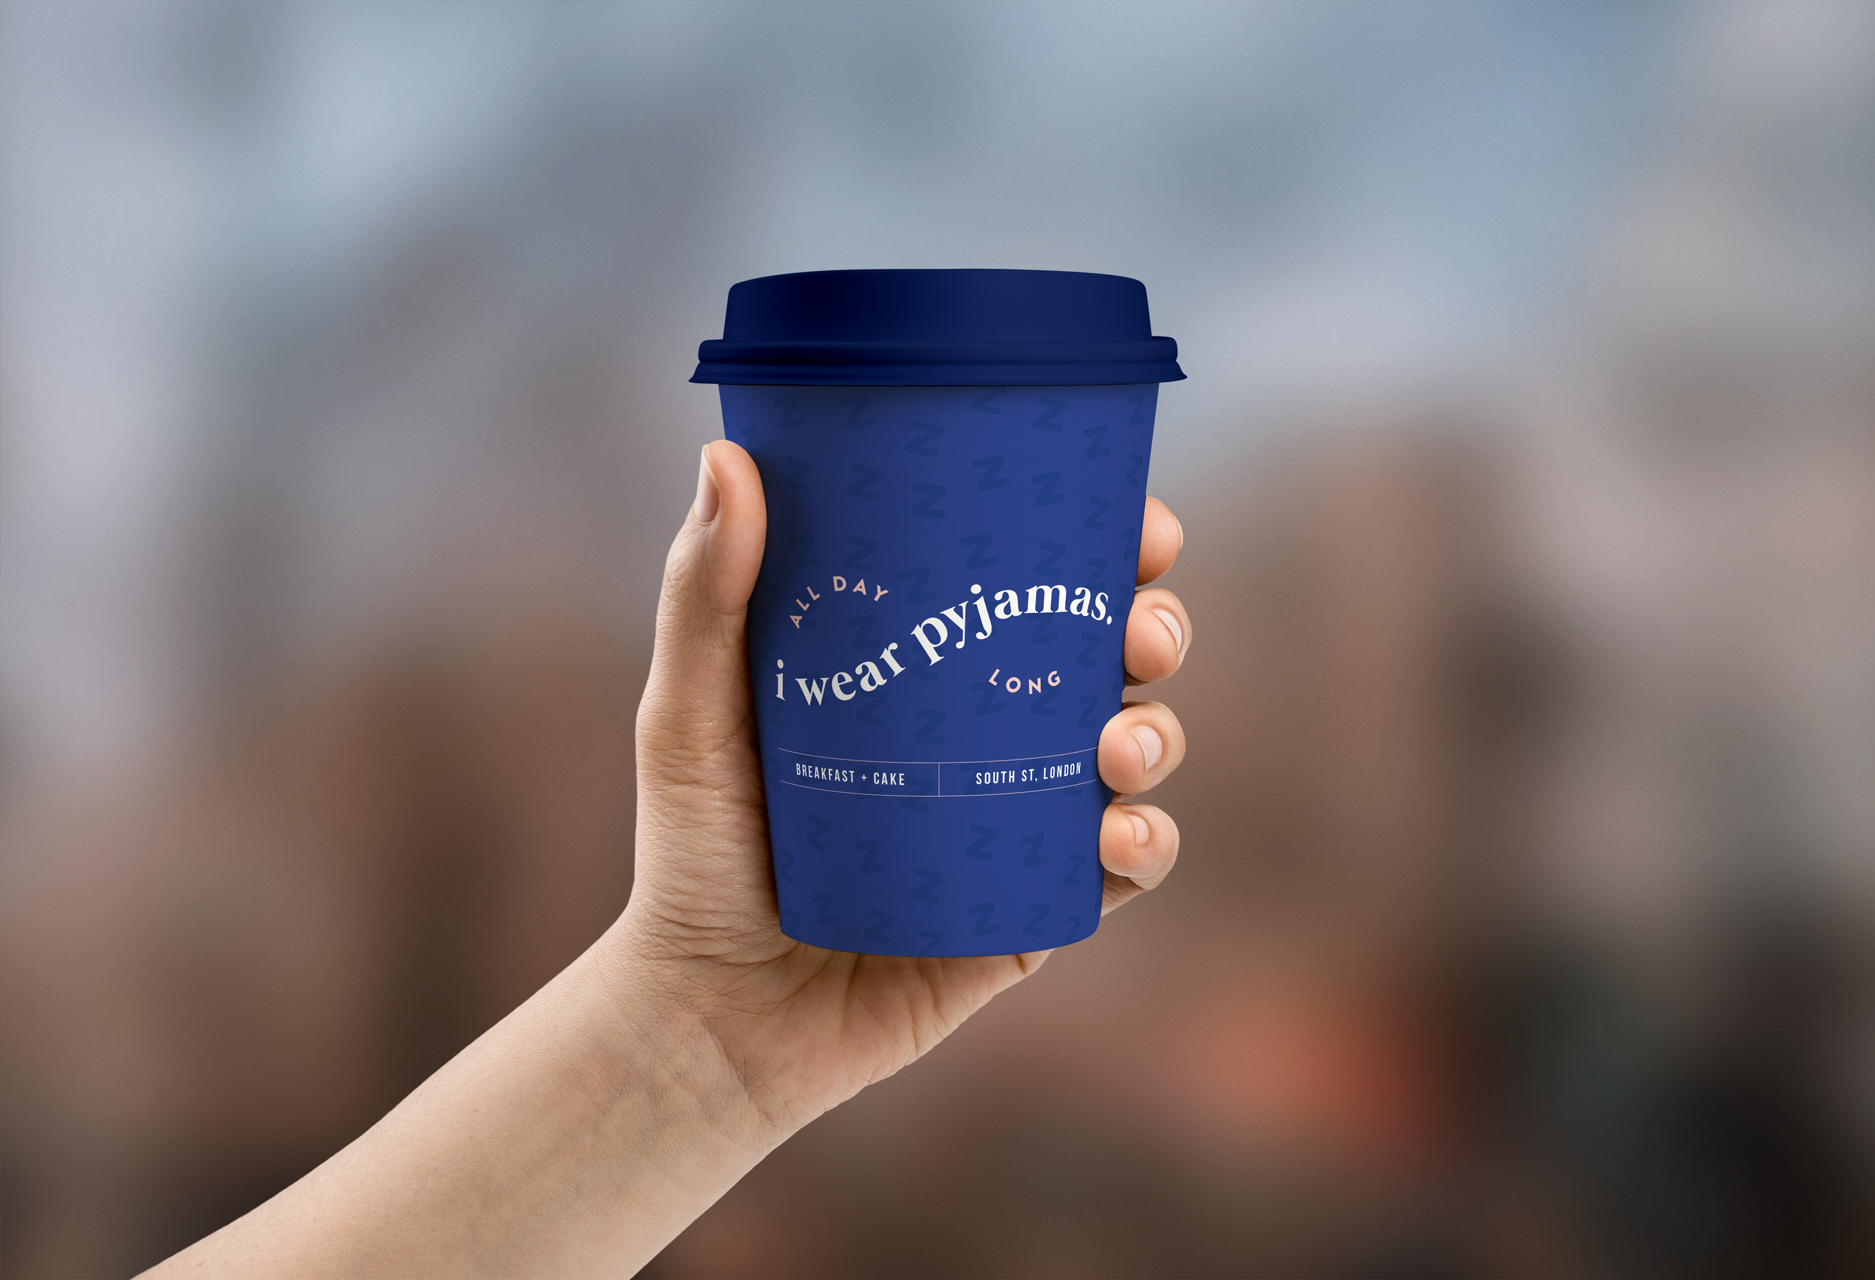 Coffee cup design for i wear pyjamas, a self-confessed breakfast & cake bar  - Designed by Wiltshire-based graphic designer, Kaye Huett